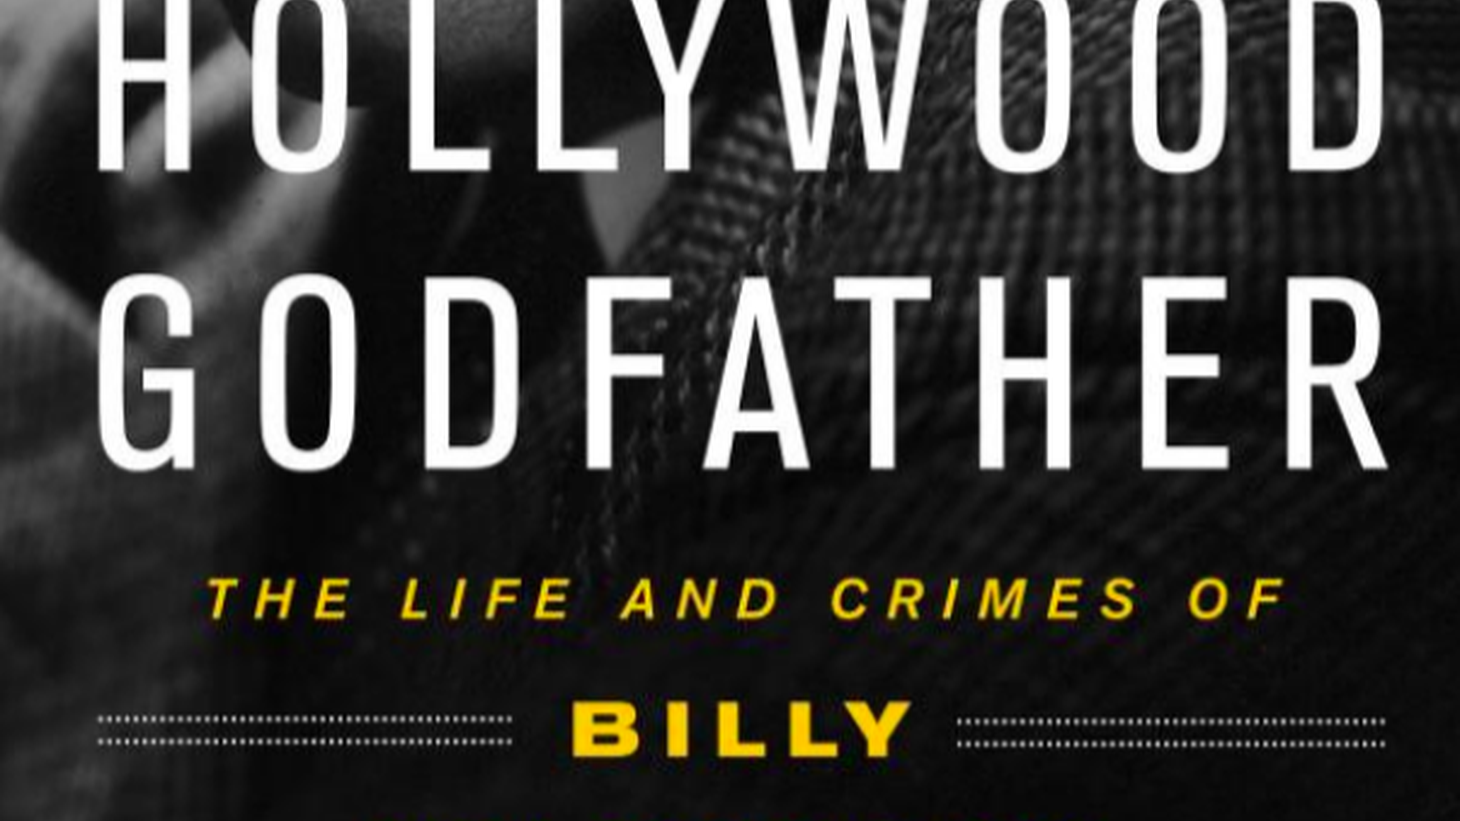 You've probably never heard of Billy Wilkerson, but he had a huge influence on Hollywood. He started the blacklist during the Red Scare, and there might not have been a Clark Gable without him.